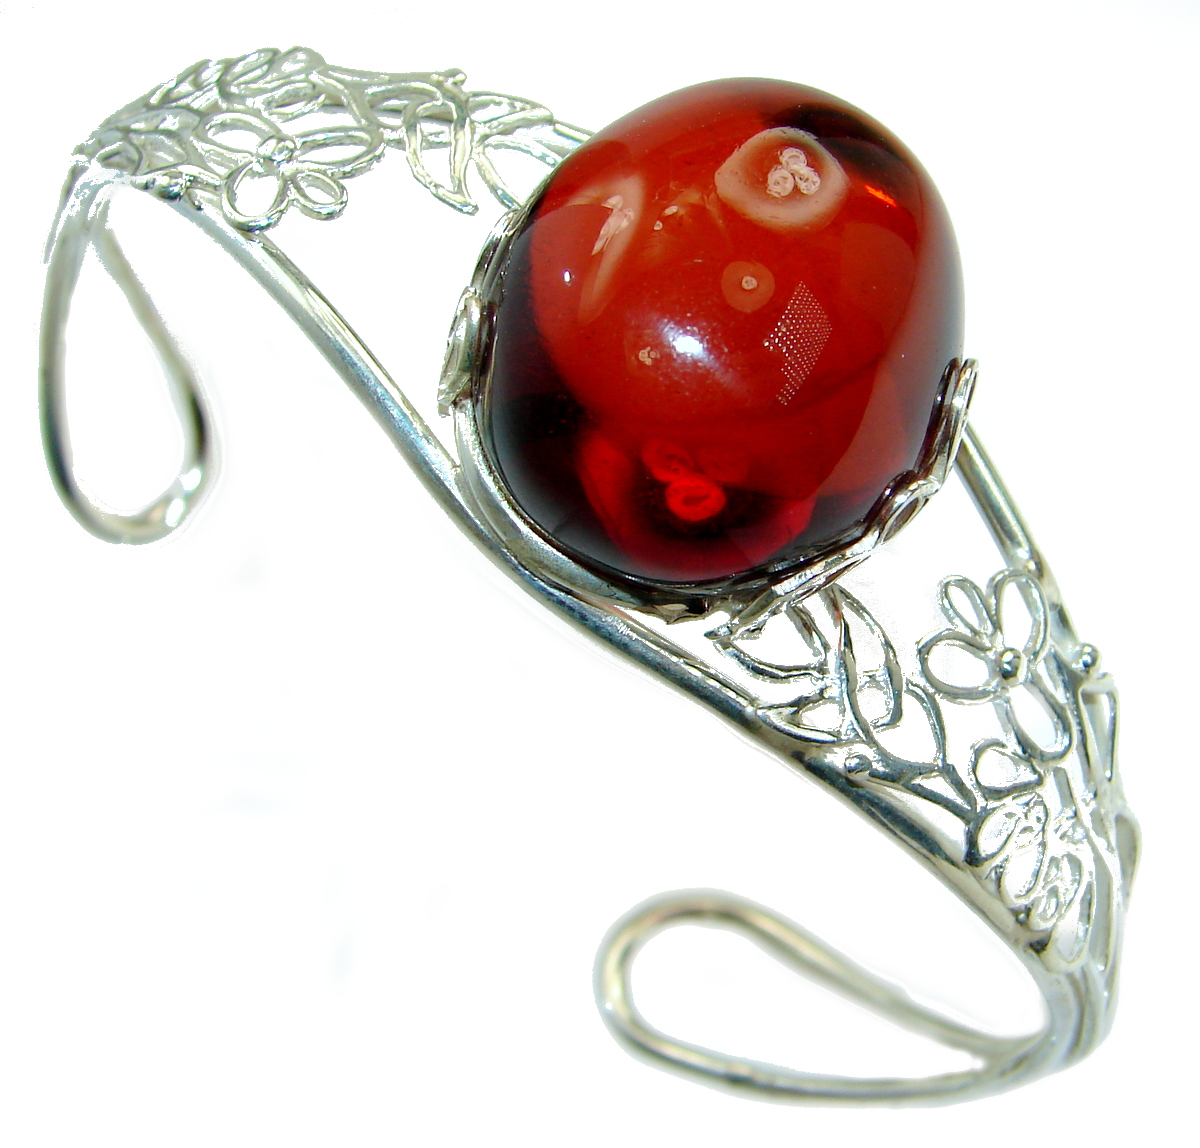 Gorgeous Classic Design Polish Amber Sterling Silver Bracelet / Cuff